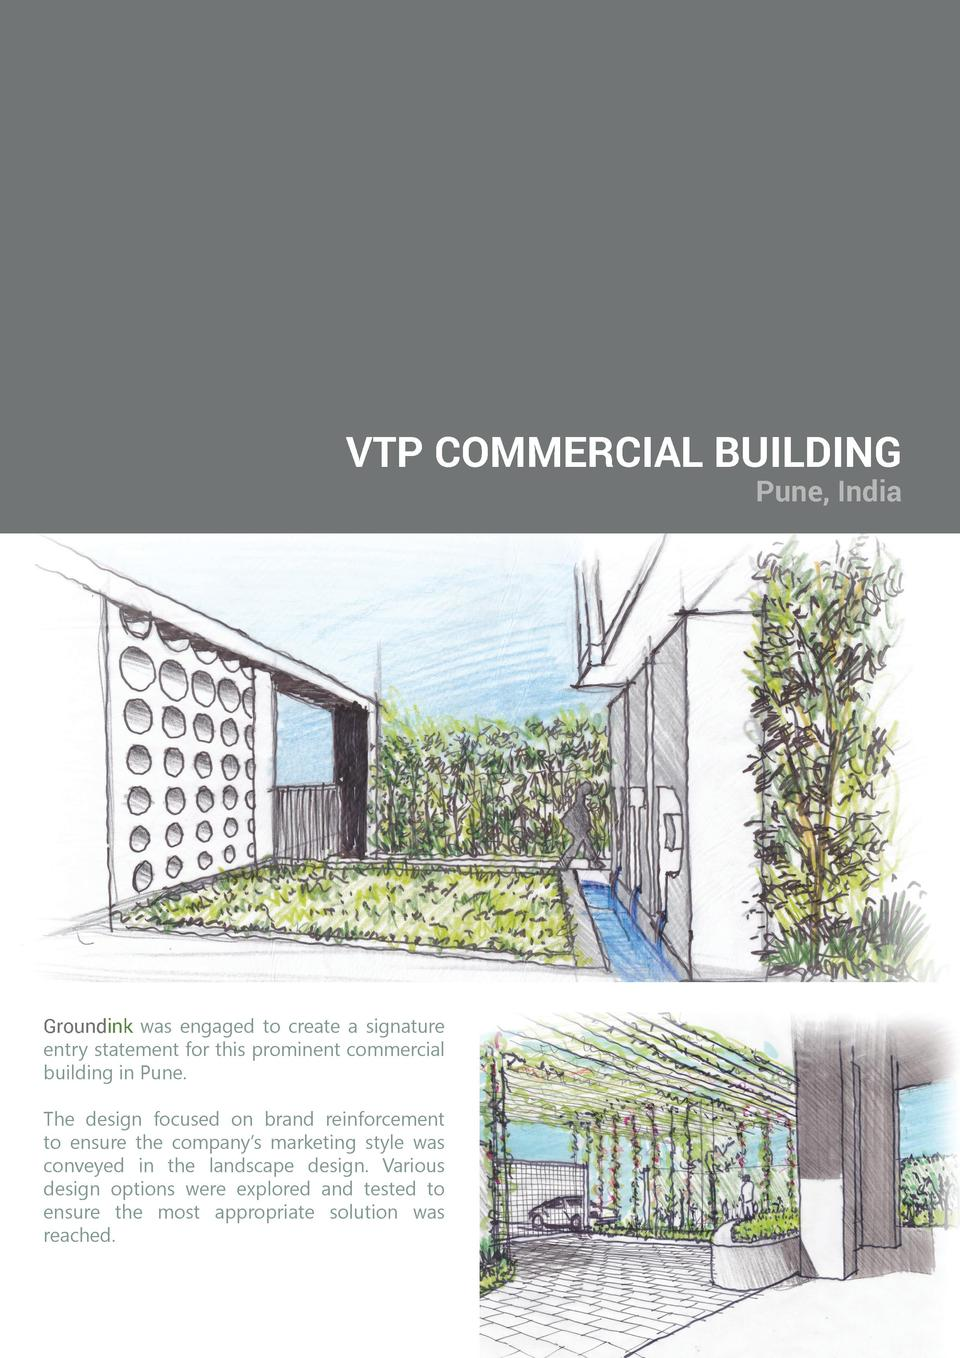 VTP COMMERCIAL BUILDING  Pune, India  Groundink was engaged to create a signature entry statement for this prominent comme...